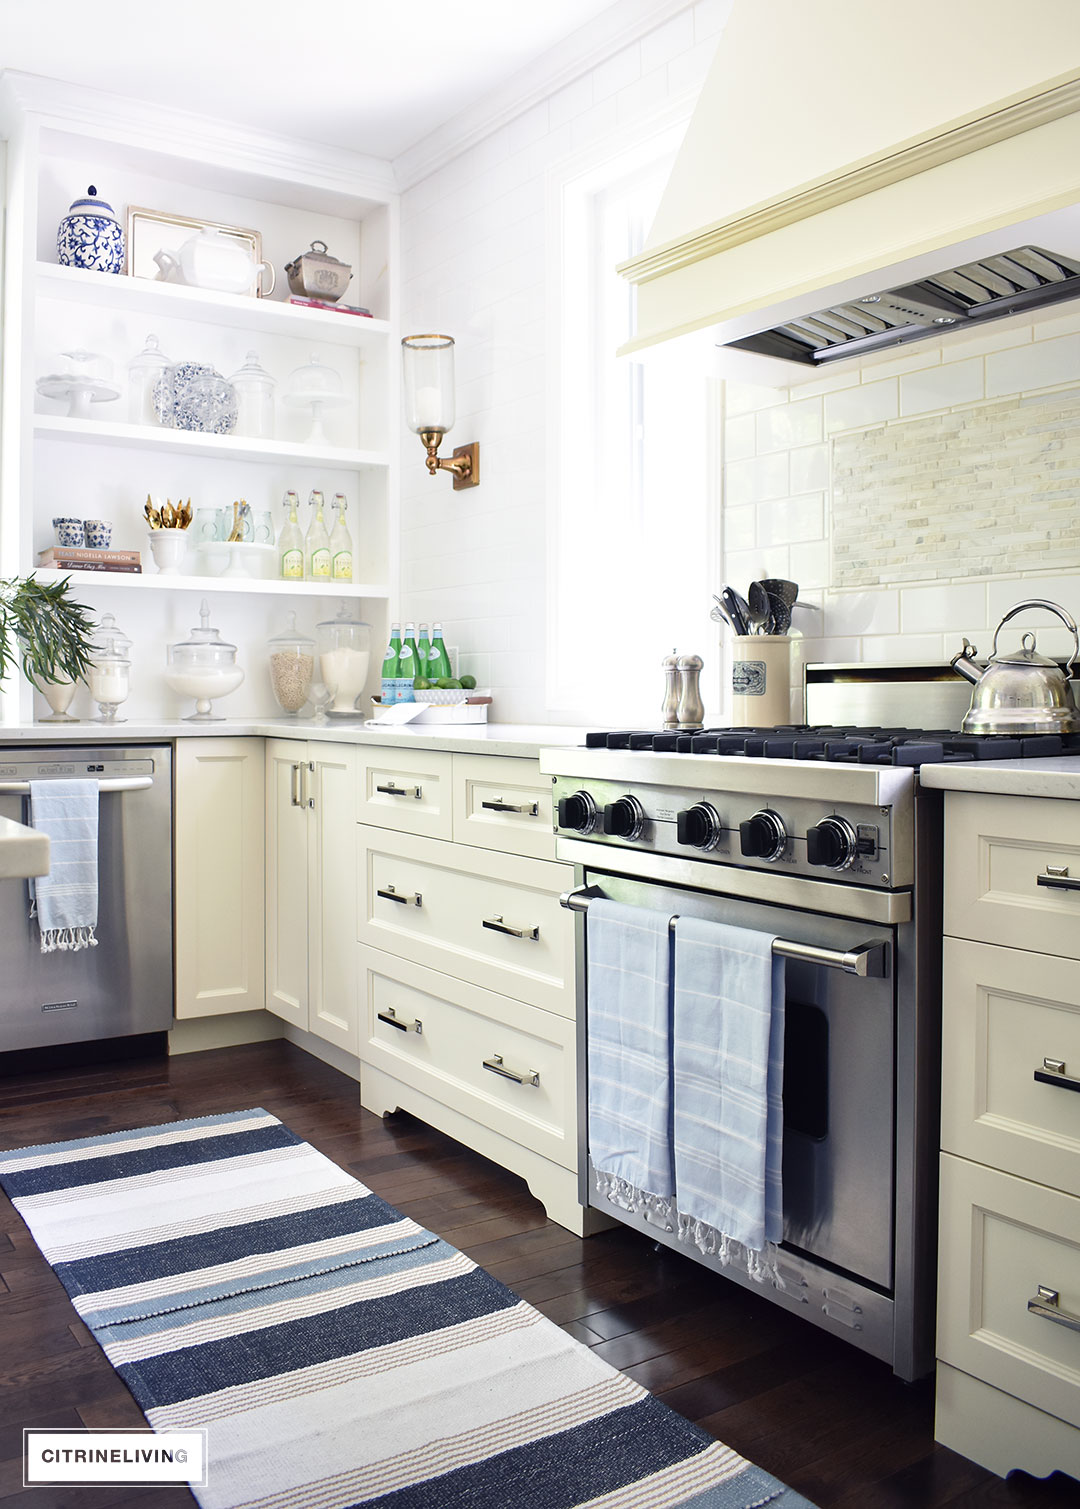 White kitchen decorated for Summer with blue and white ginger jars and dishes accented with a coastal blue and white striped rug and turkish towels. Open shelving to display dishes and serving pieces makes a strong statement.